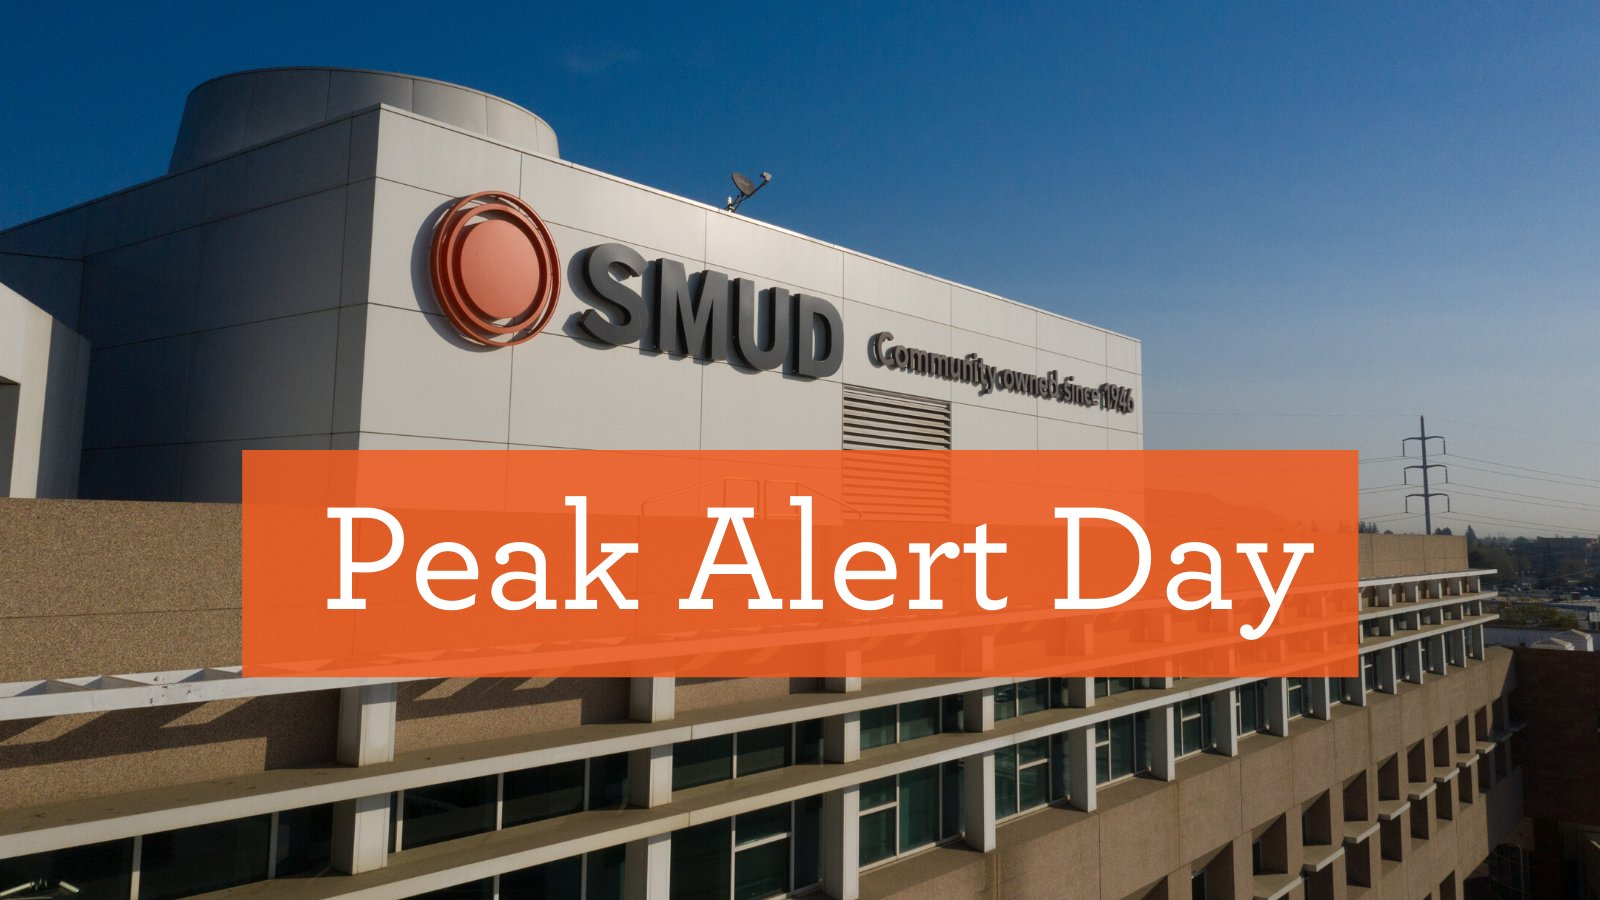 SMUD Faces Peak Alert Day – Warns that Power Shortfalls are Possible